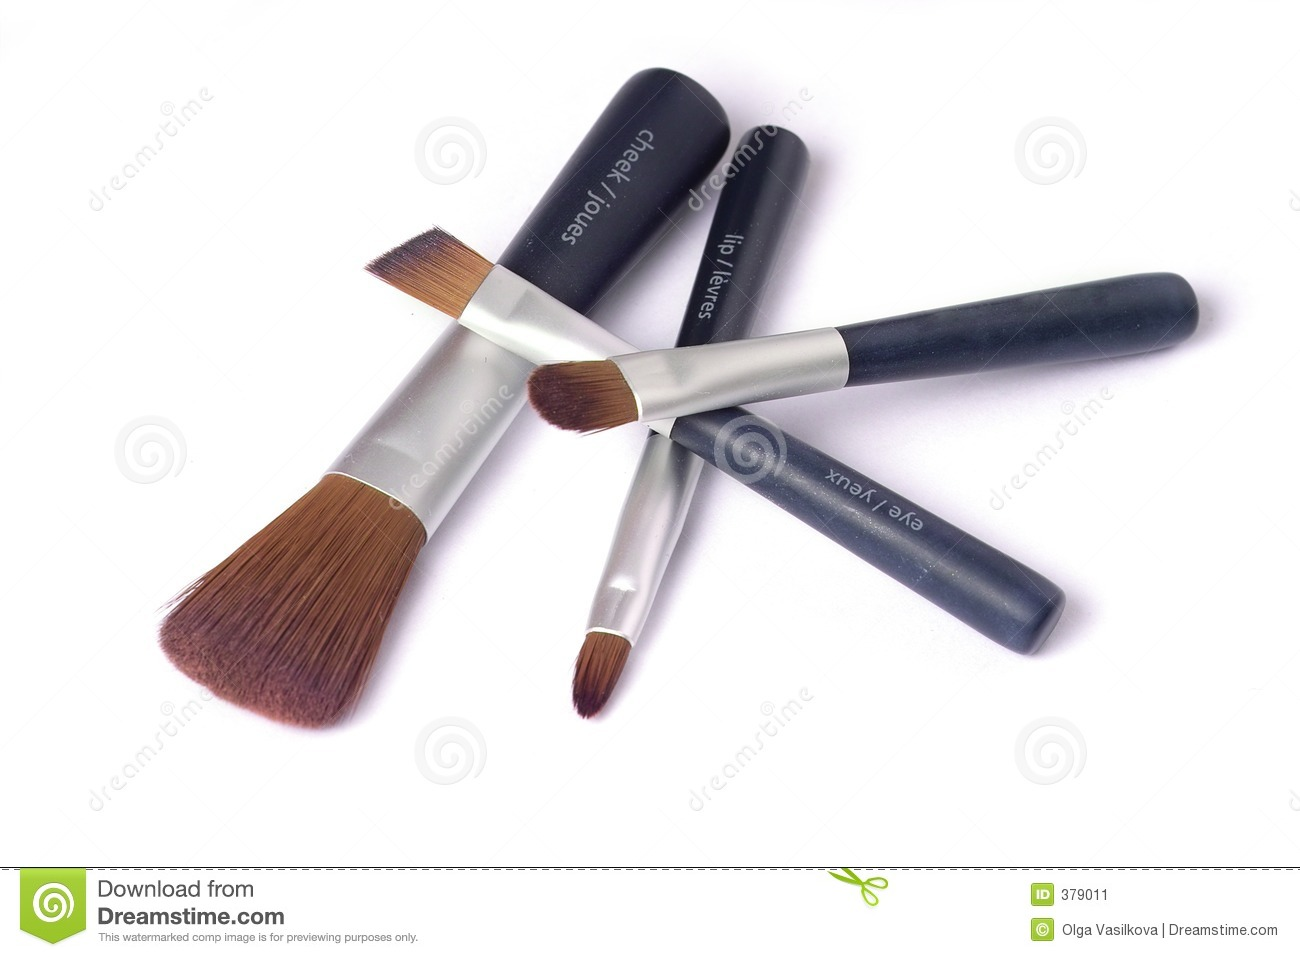 Four beauty brushes